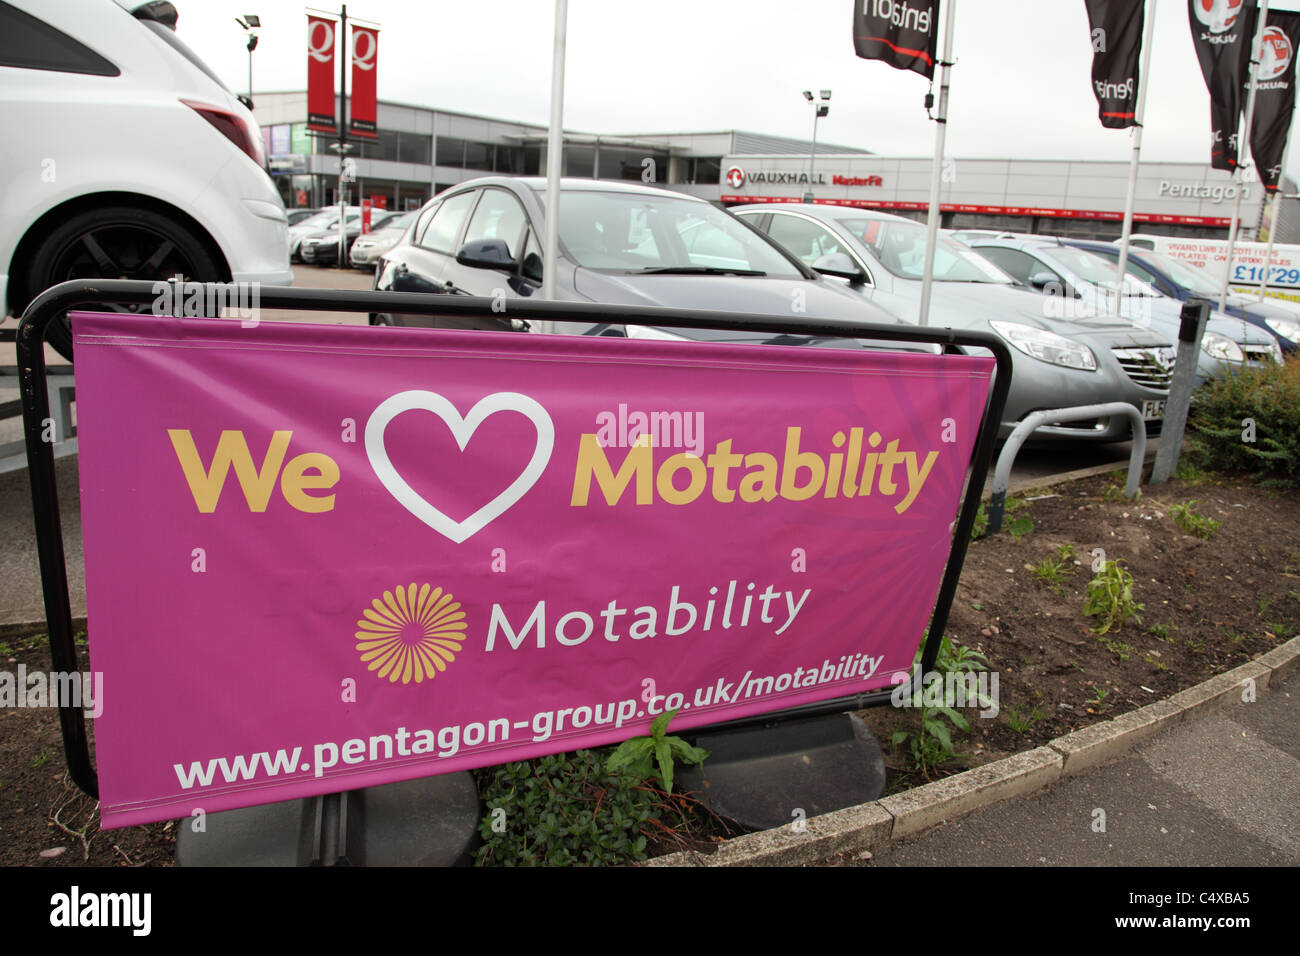 A garage operating the Motability scheme in the U.K. - Stock Image